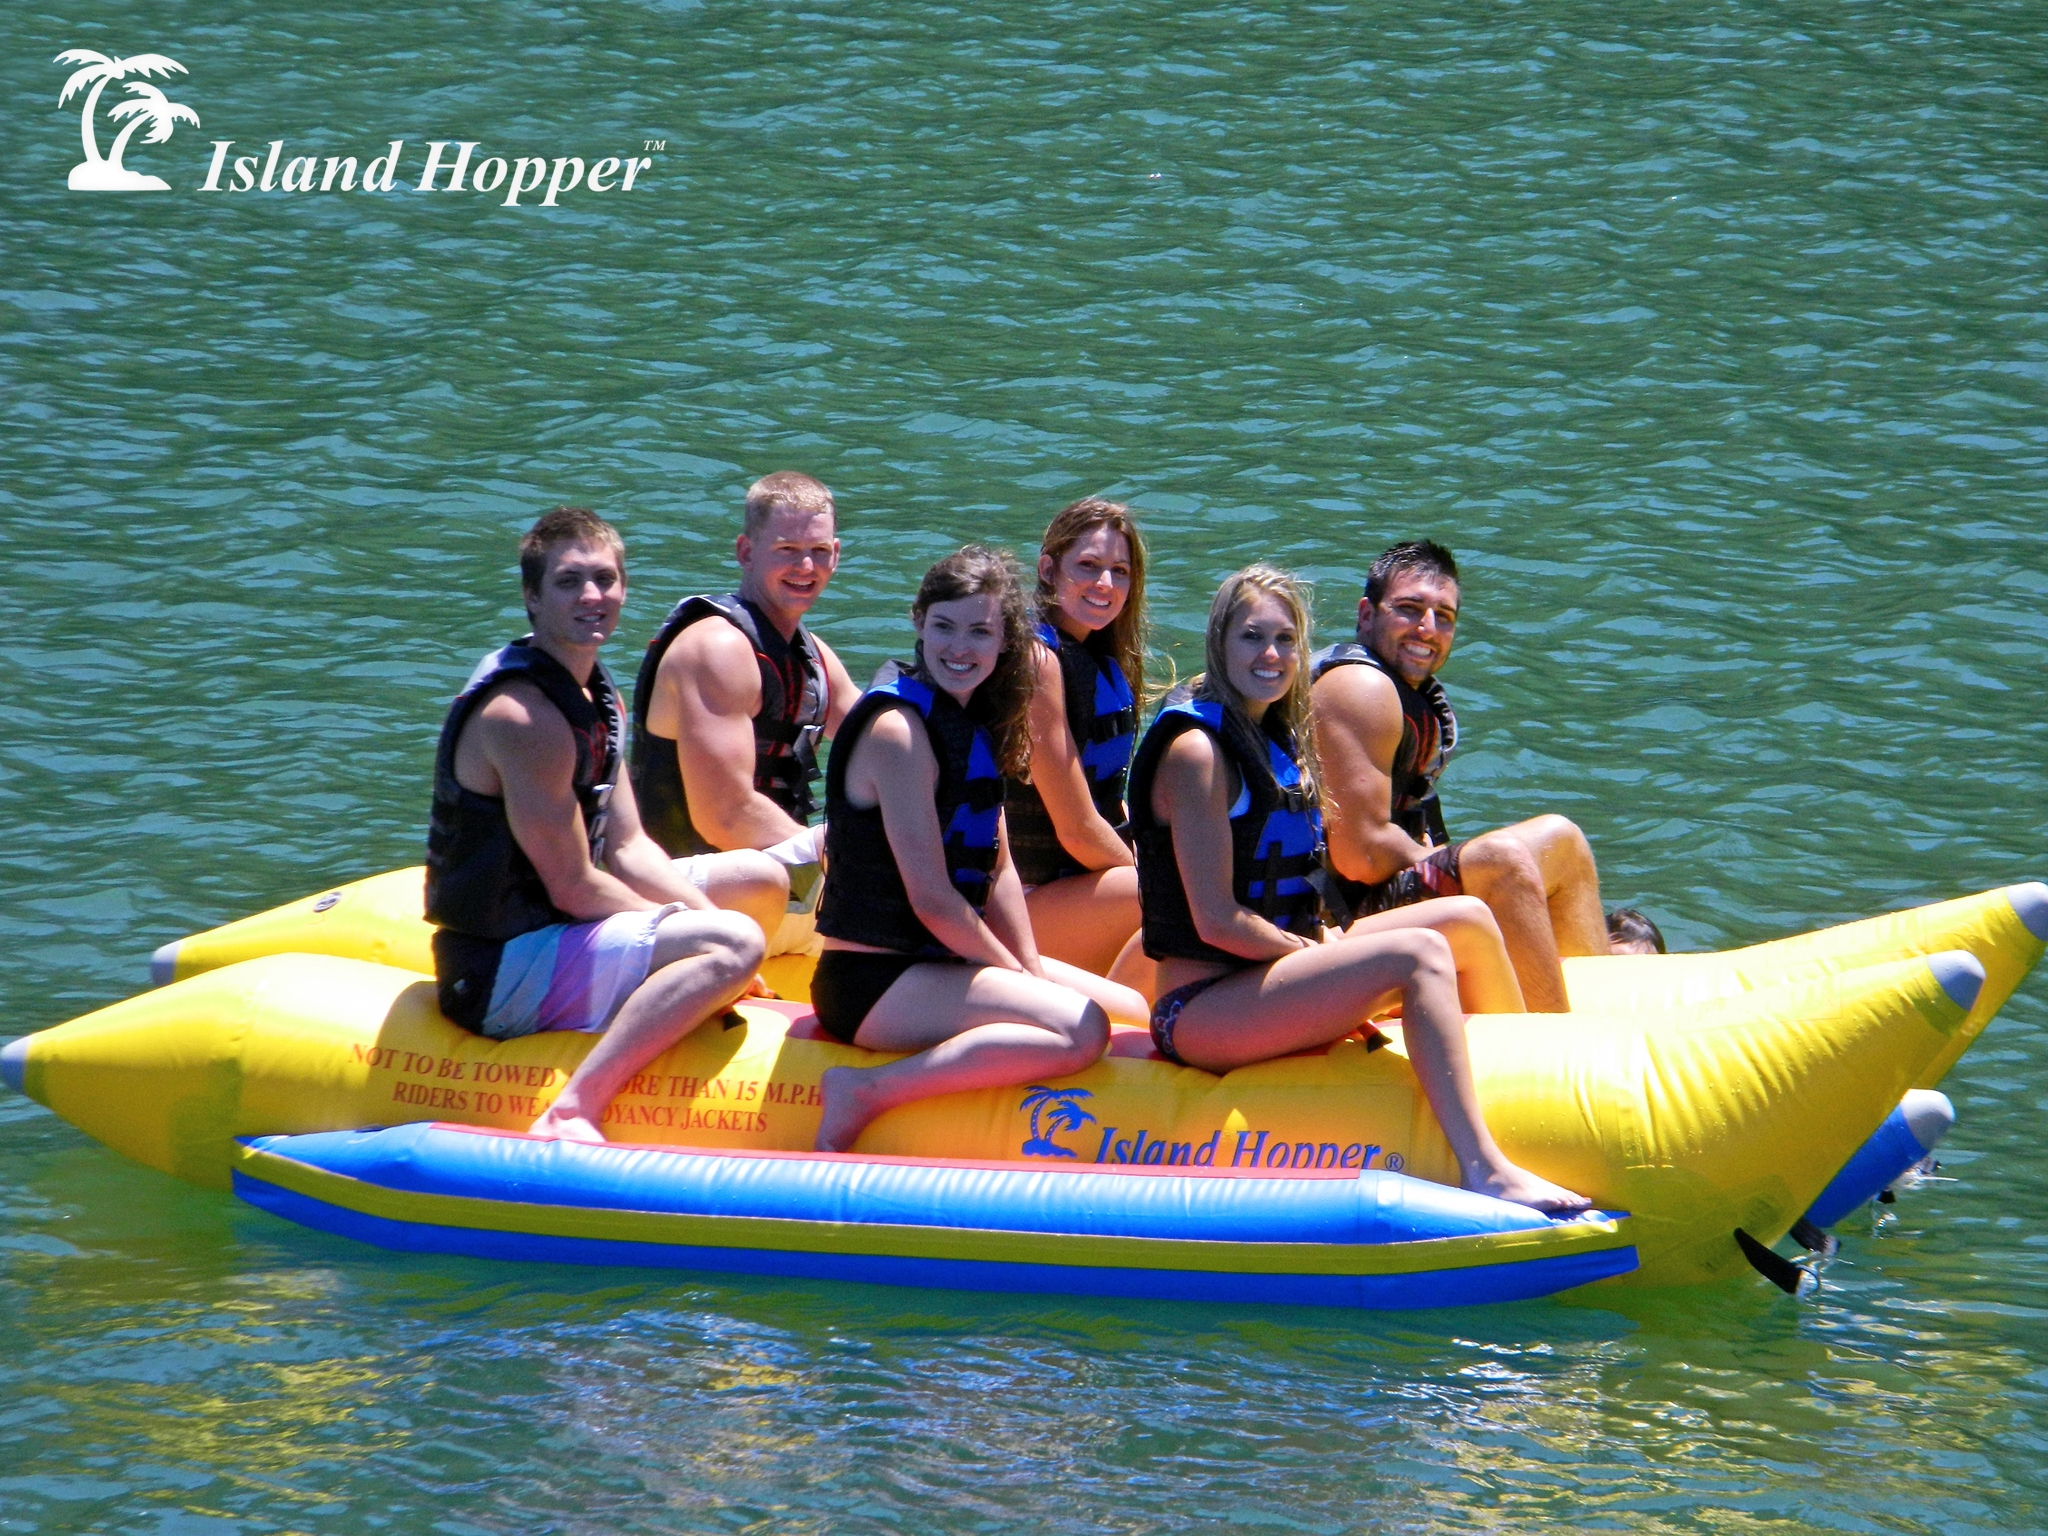 Banana Boat Elite Class 6 Passenger Side By Island Hopper Inflatable Towing Harness Person